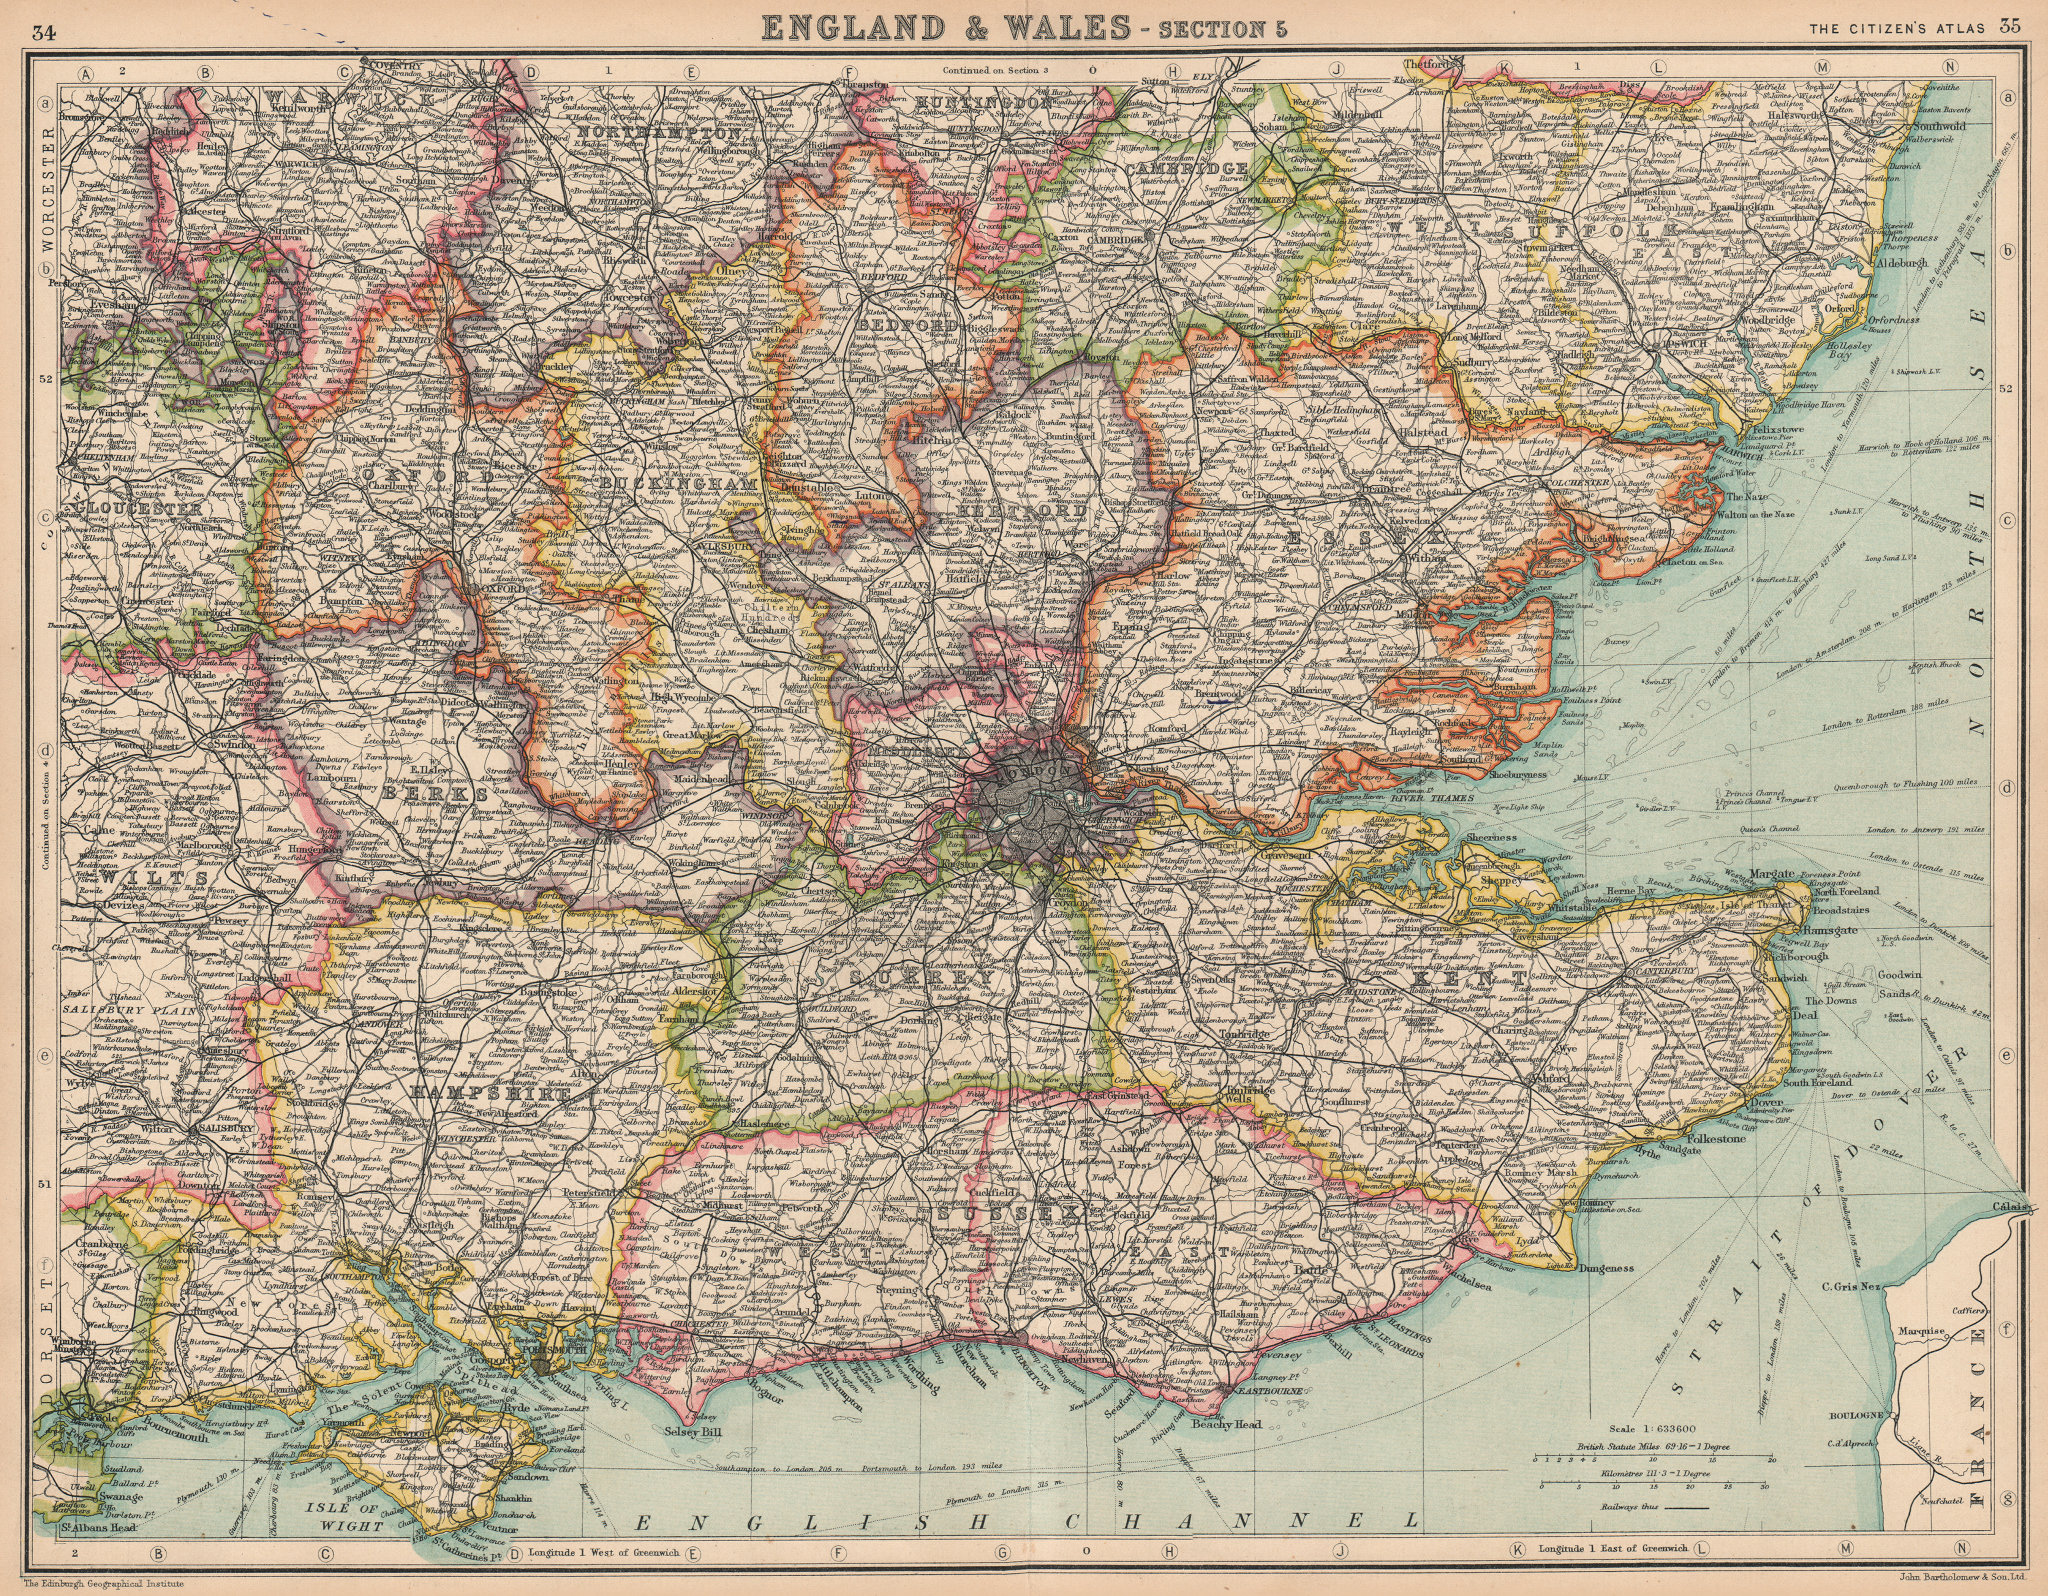 Associate Product SOUTH EAST ENGLAND. counties. BARTHOLOMEW 1924 old vintage map plan chart